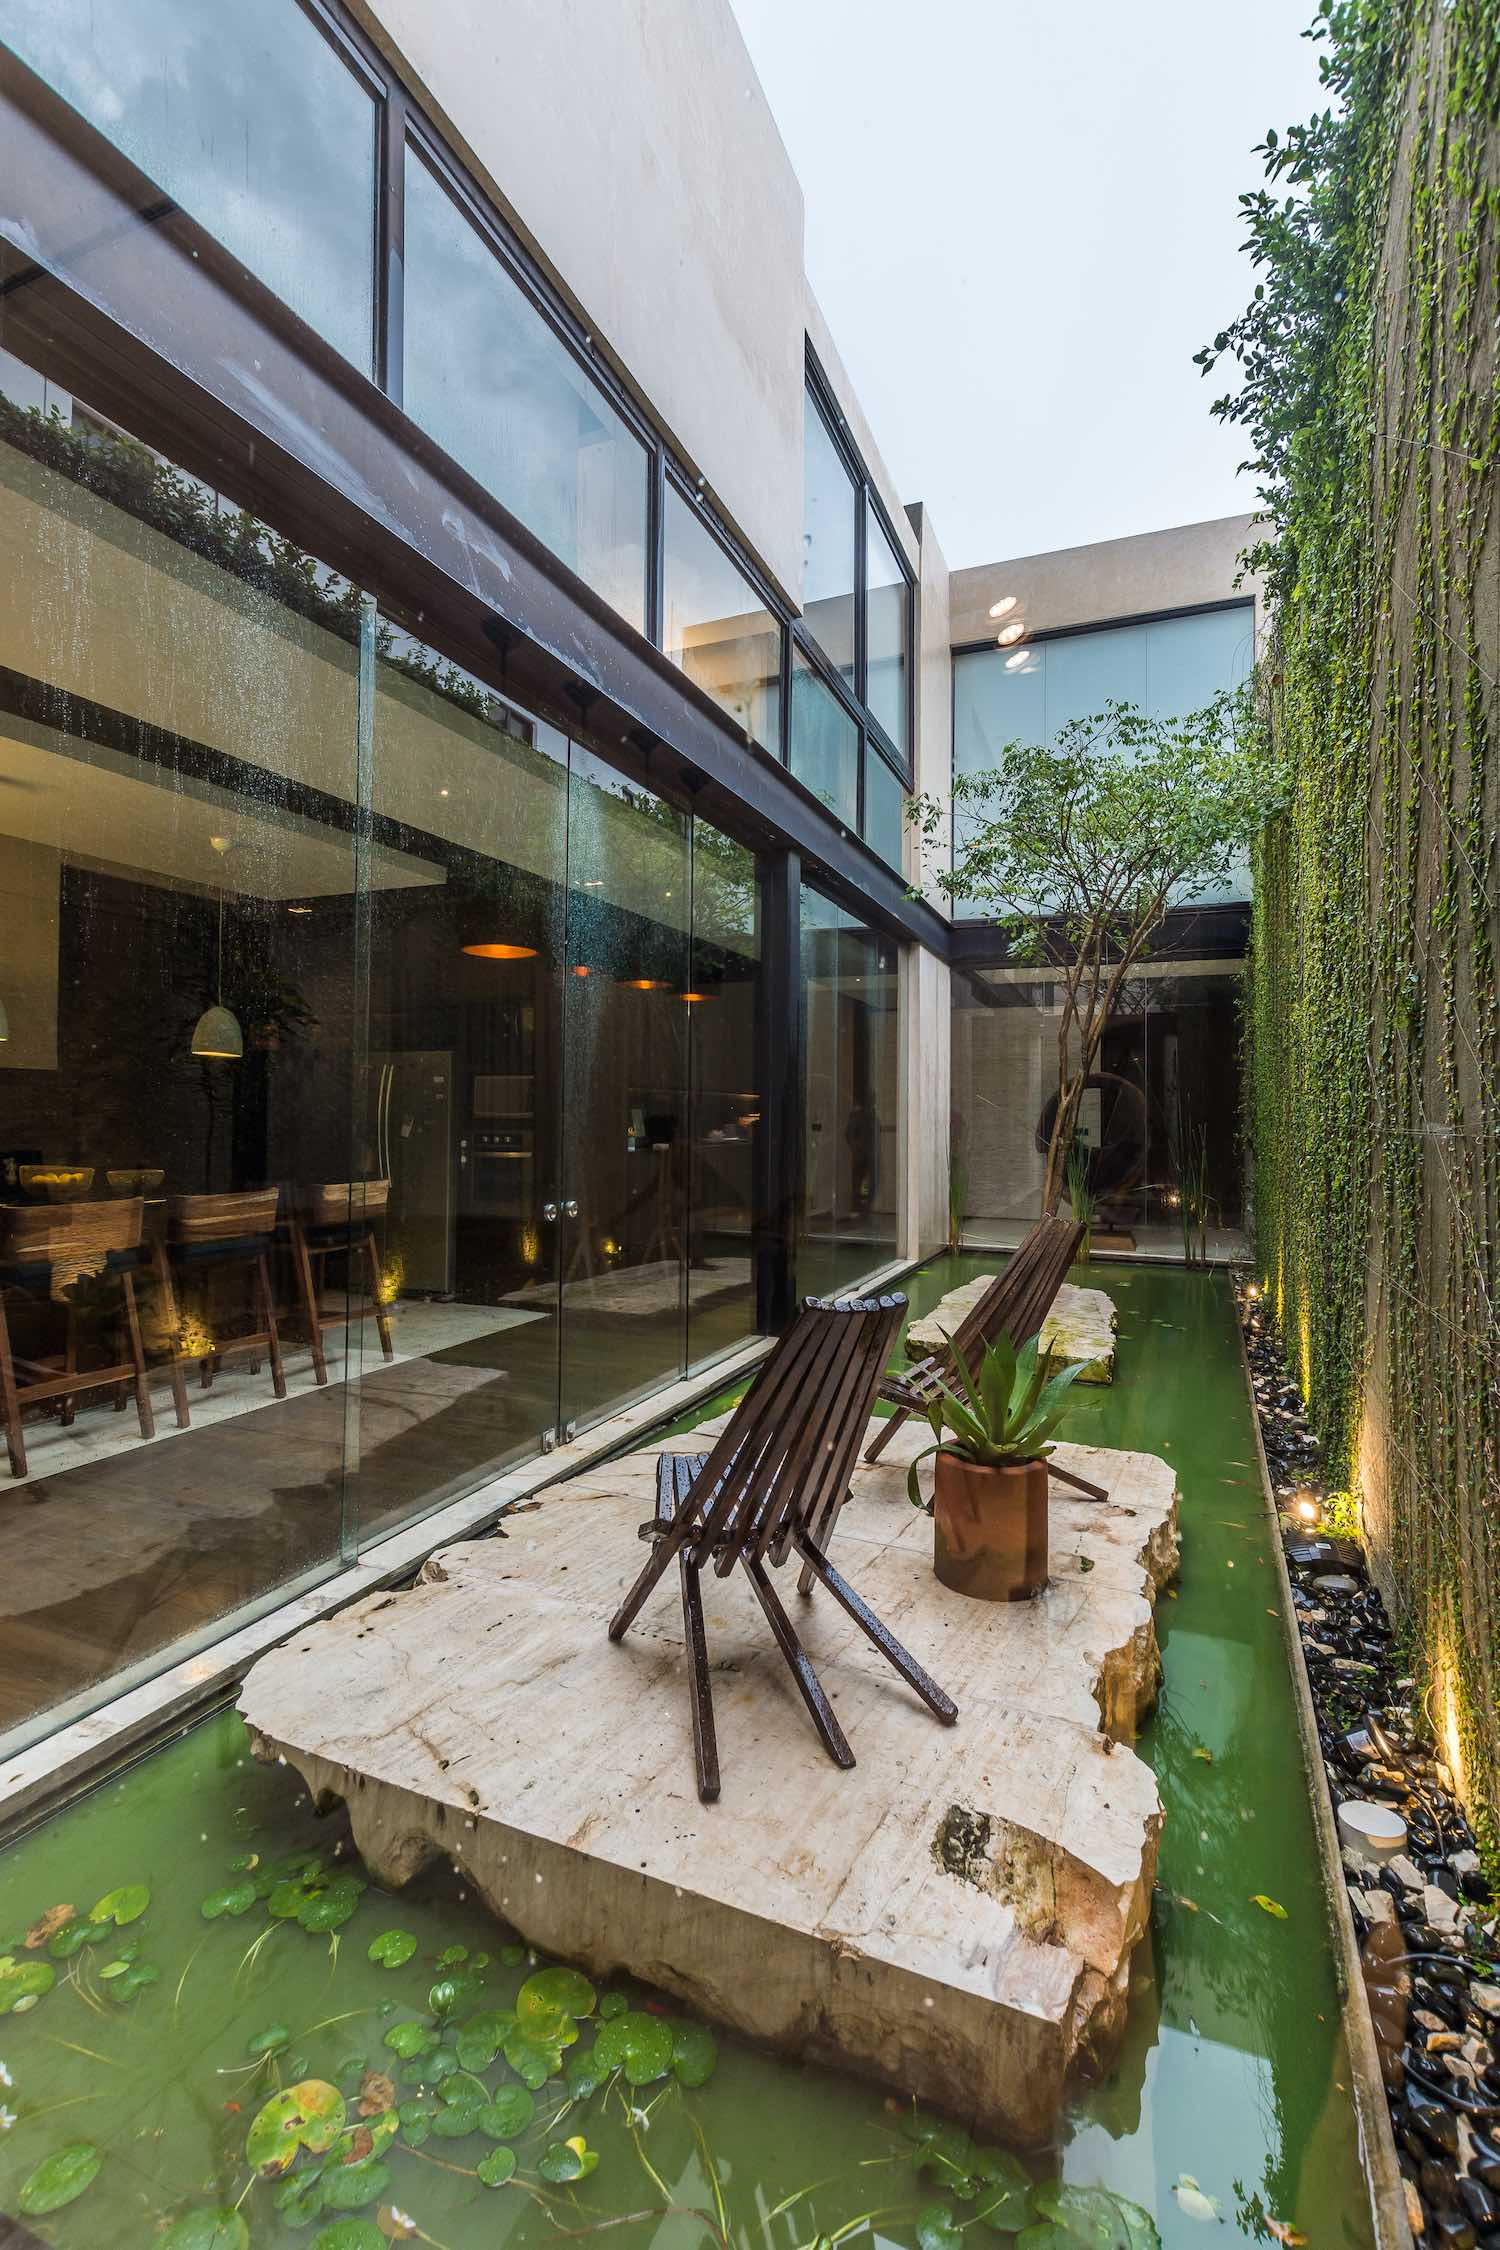 a central courtyard with water and green wall letting the natural light enters the house